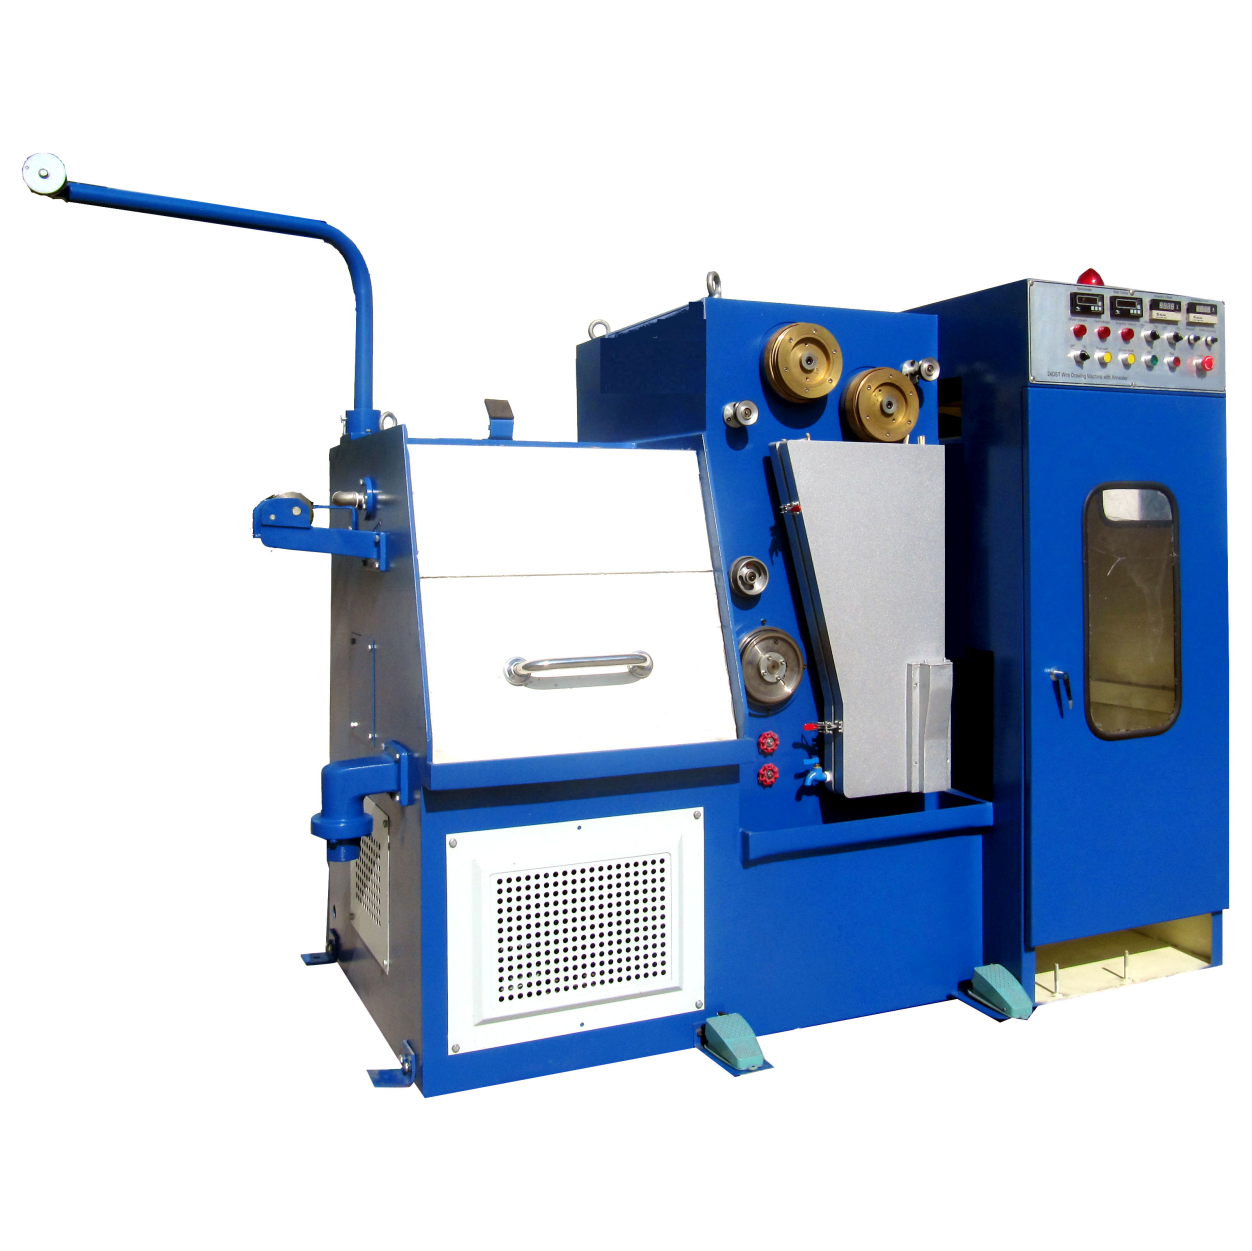 22DT Fine Copper wire drawing machine with annealing